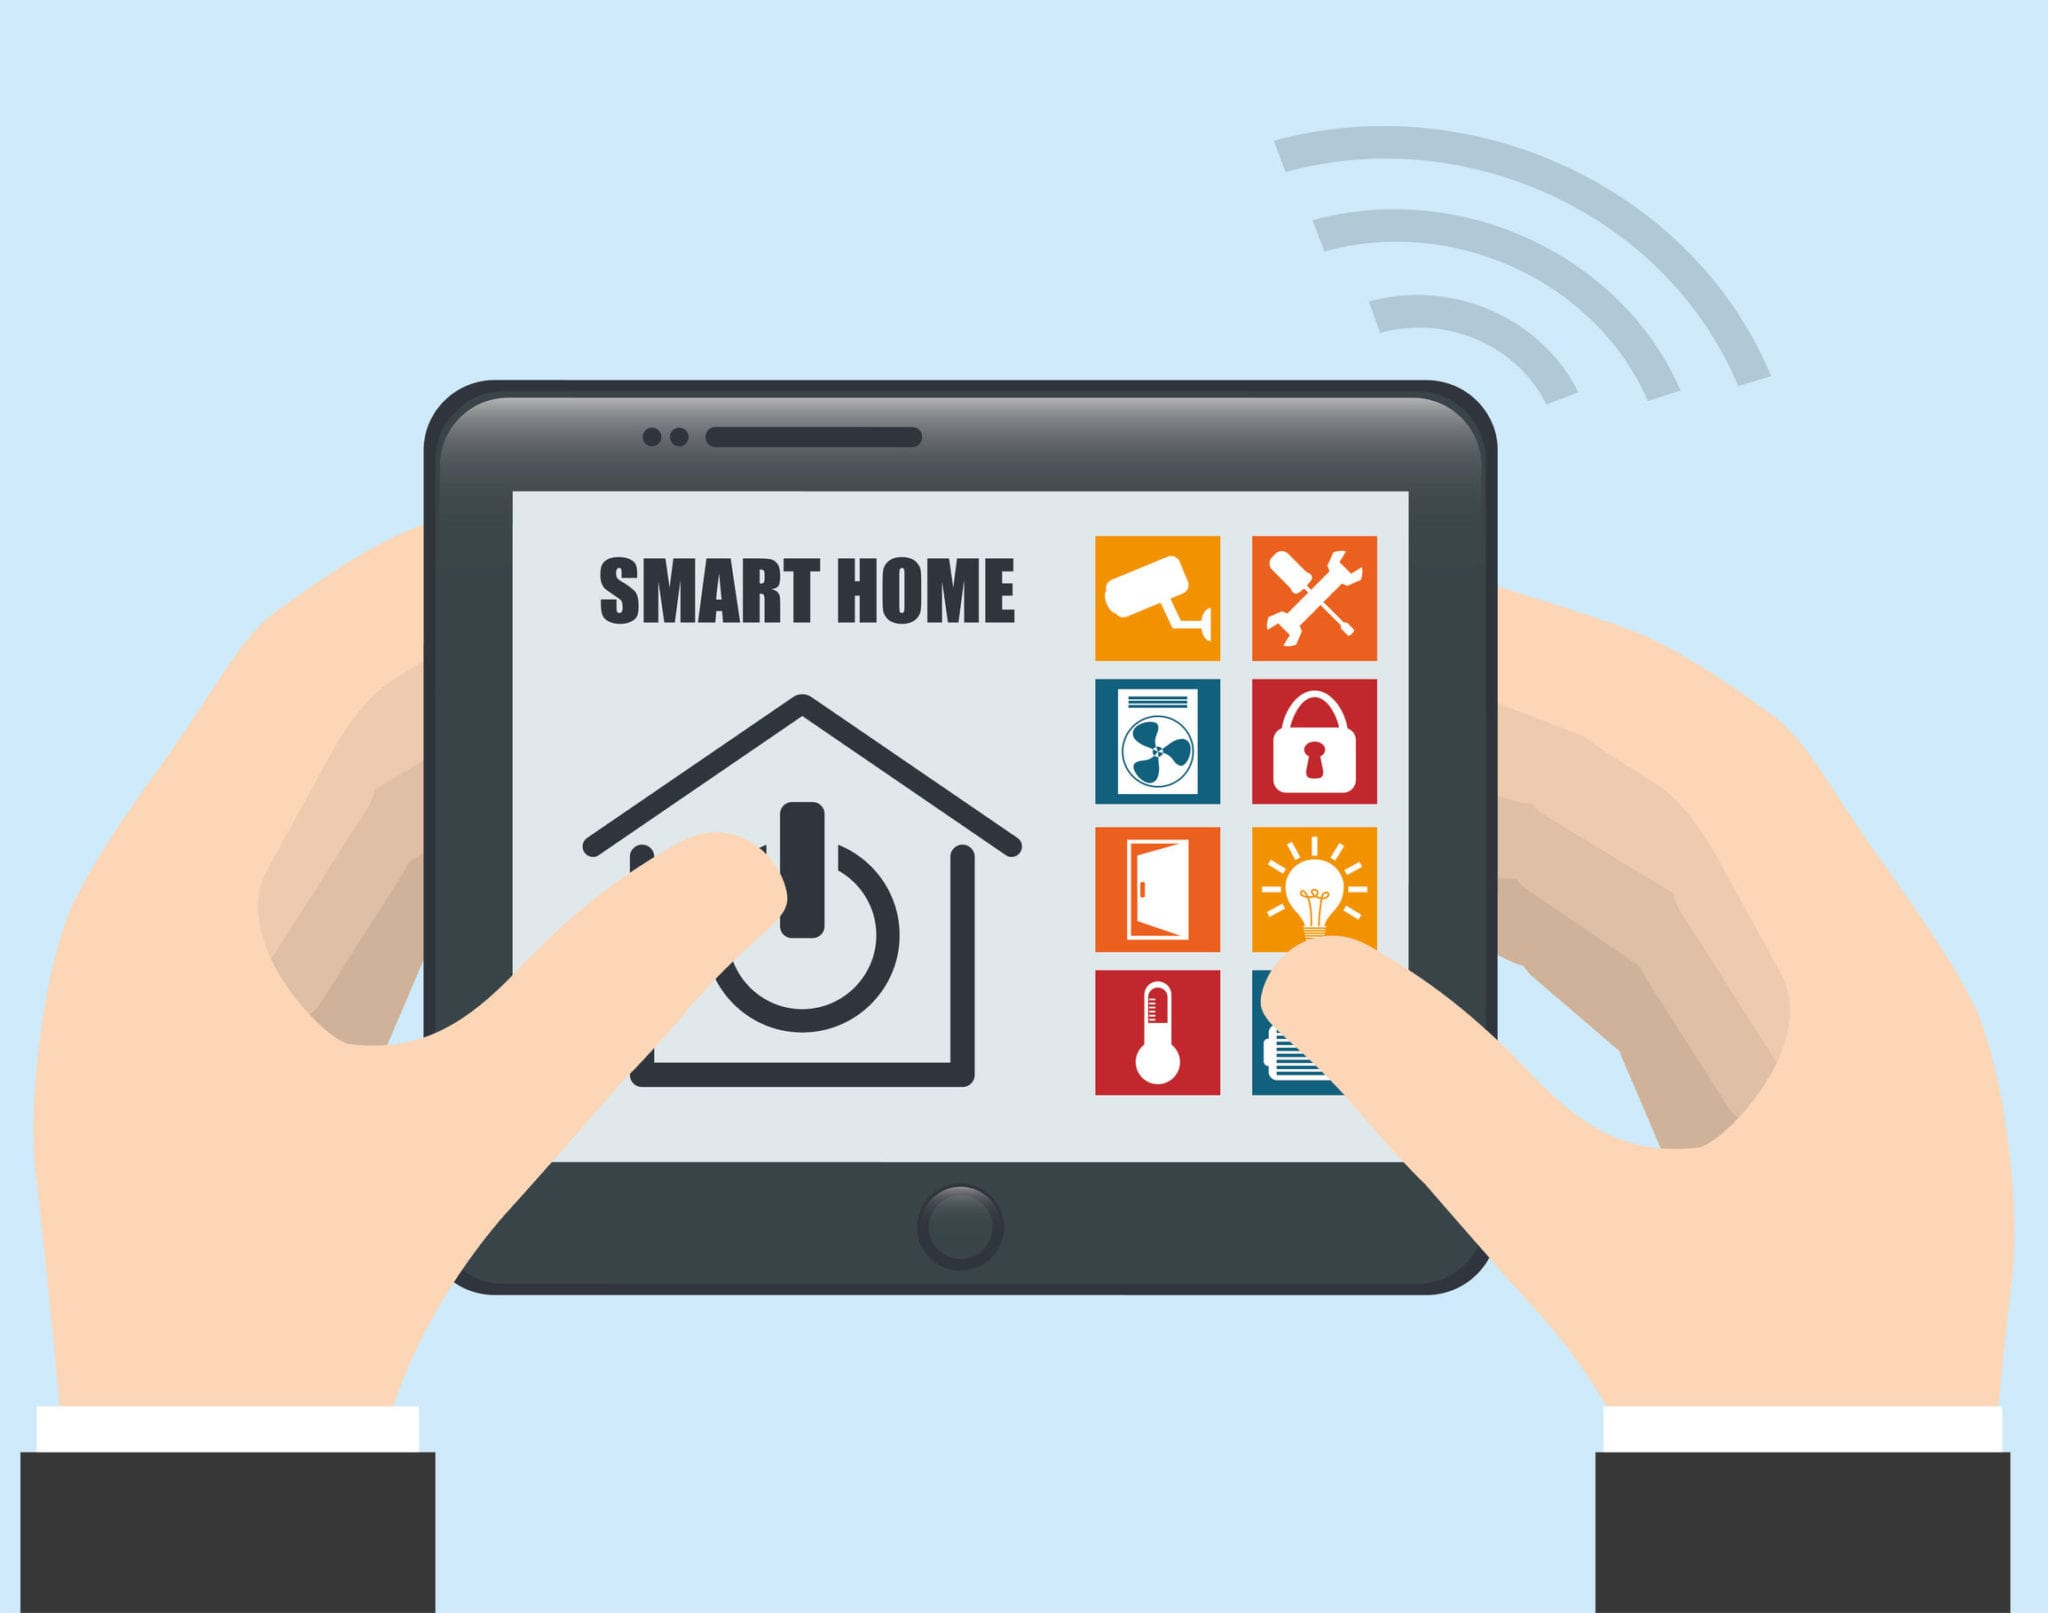 study: north america to reach 42.6 million smart homes by 2020